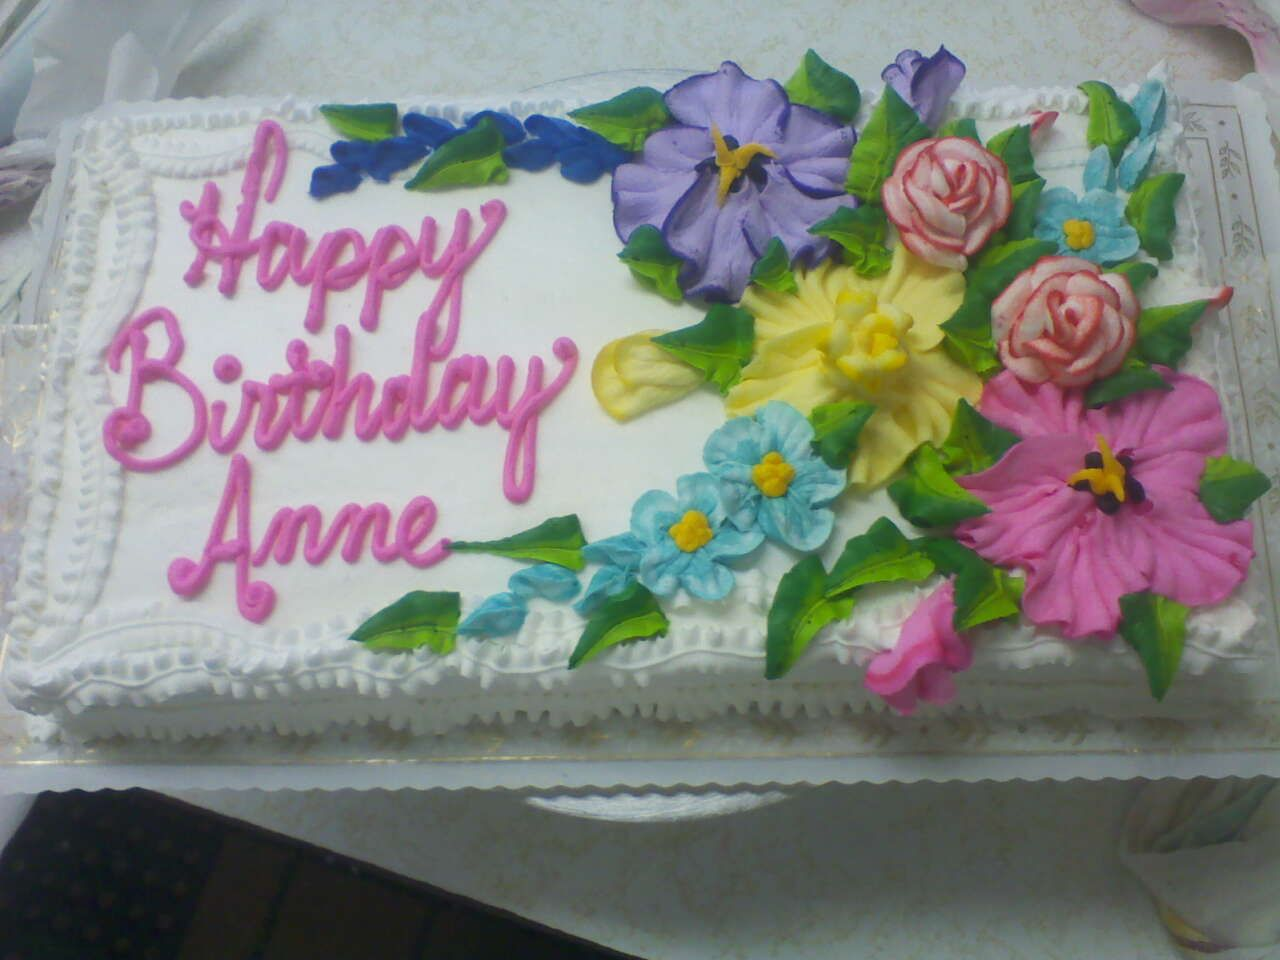 Happy Birthday Anne Cakes Google Search Butter Cream Cheese